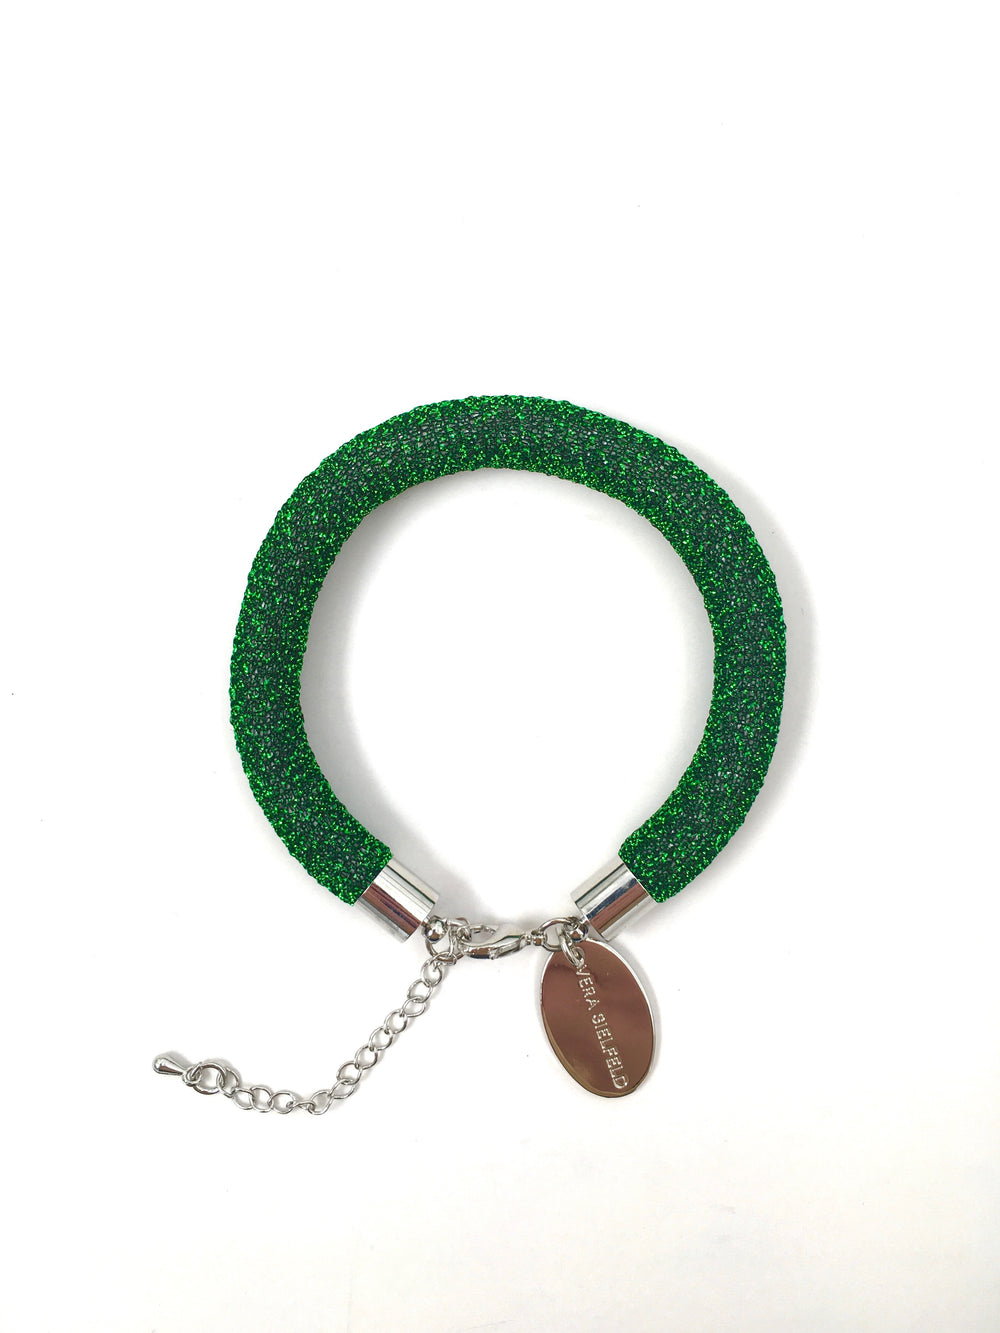 PULSERA SIMPLE verde lurex brillo